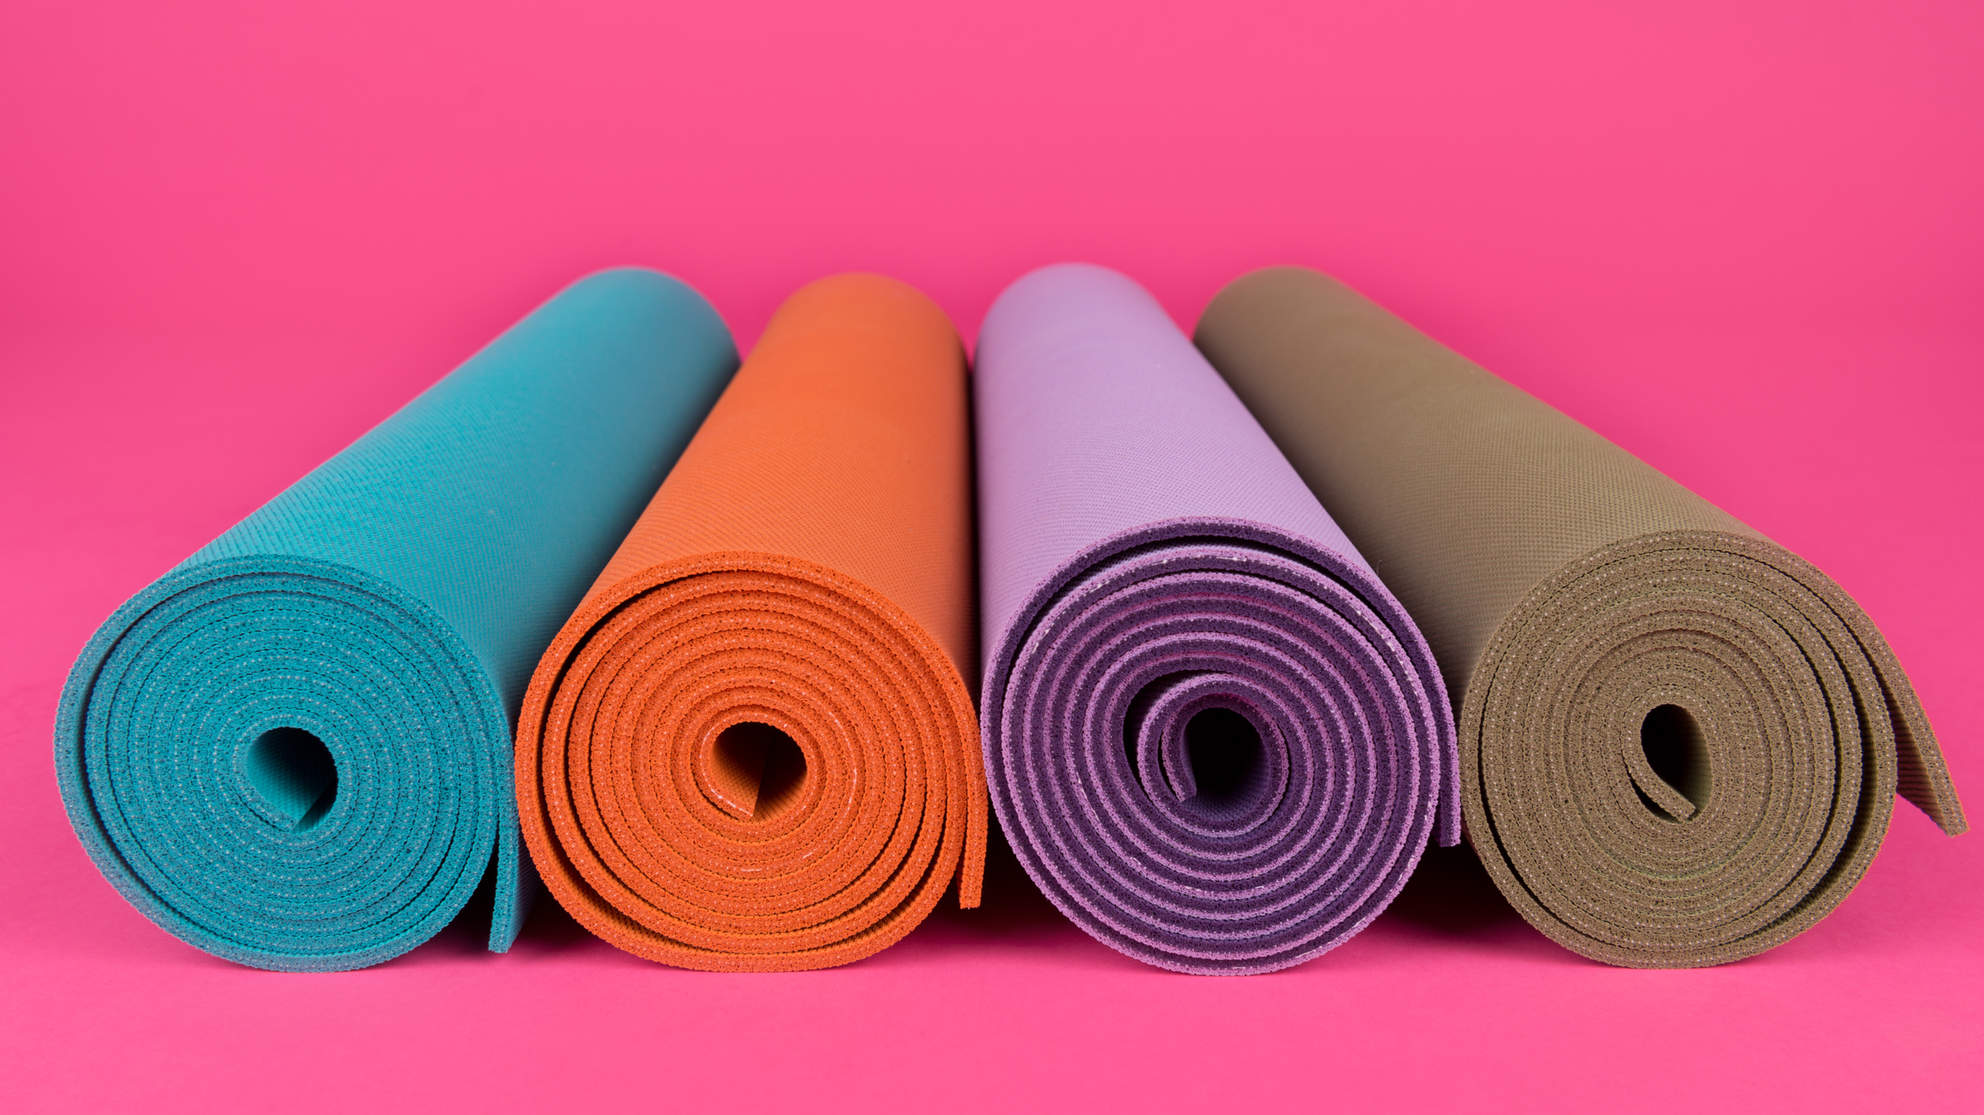 Hot Yoga Is No Better for You Than Regular Yoga, Study Says